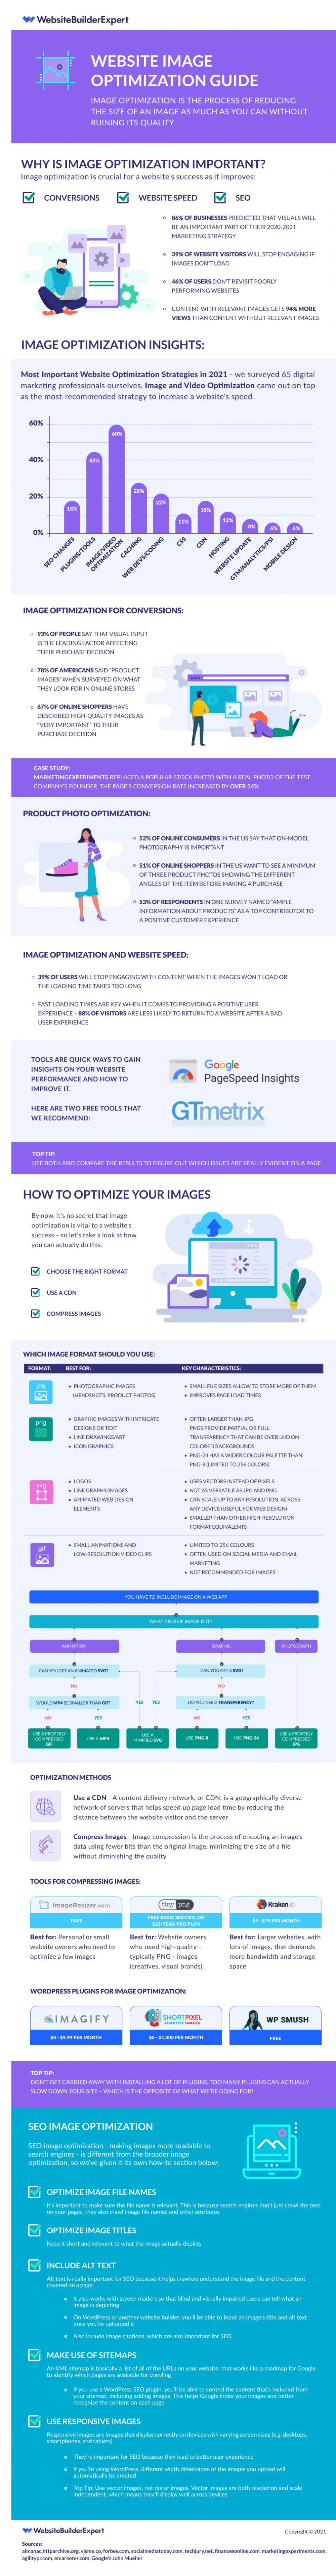 Image Optimization Guide Infographic